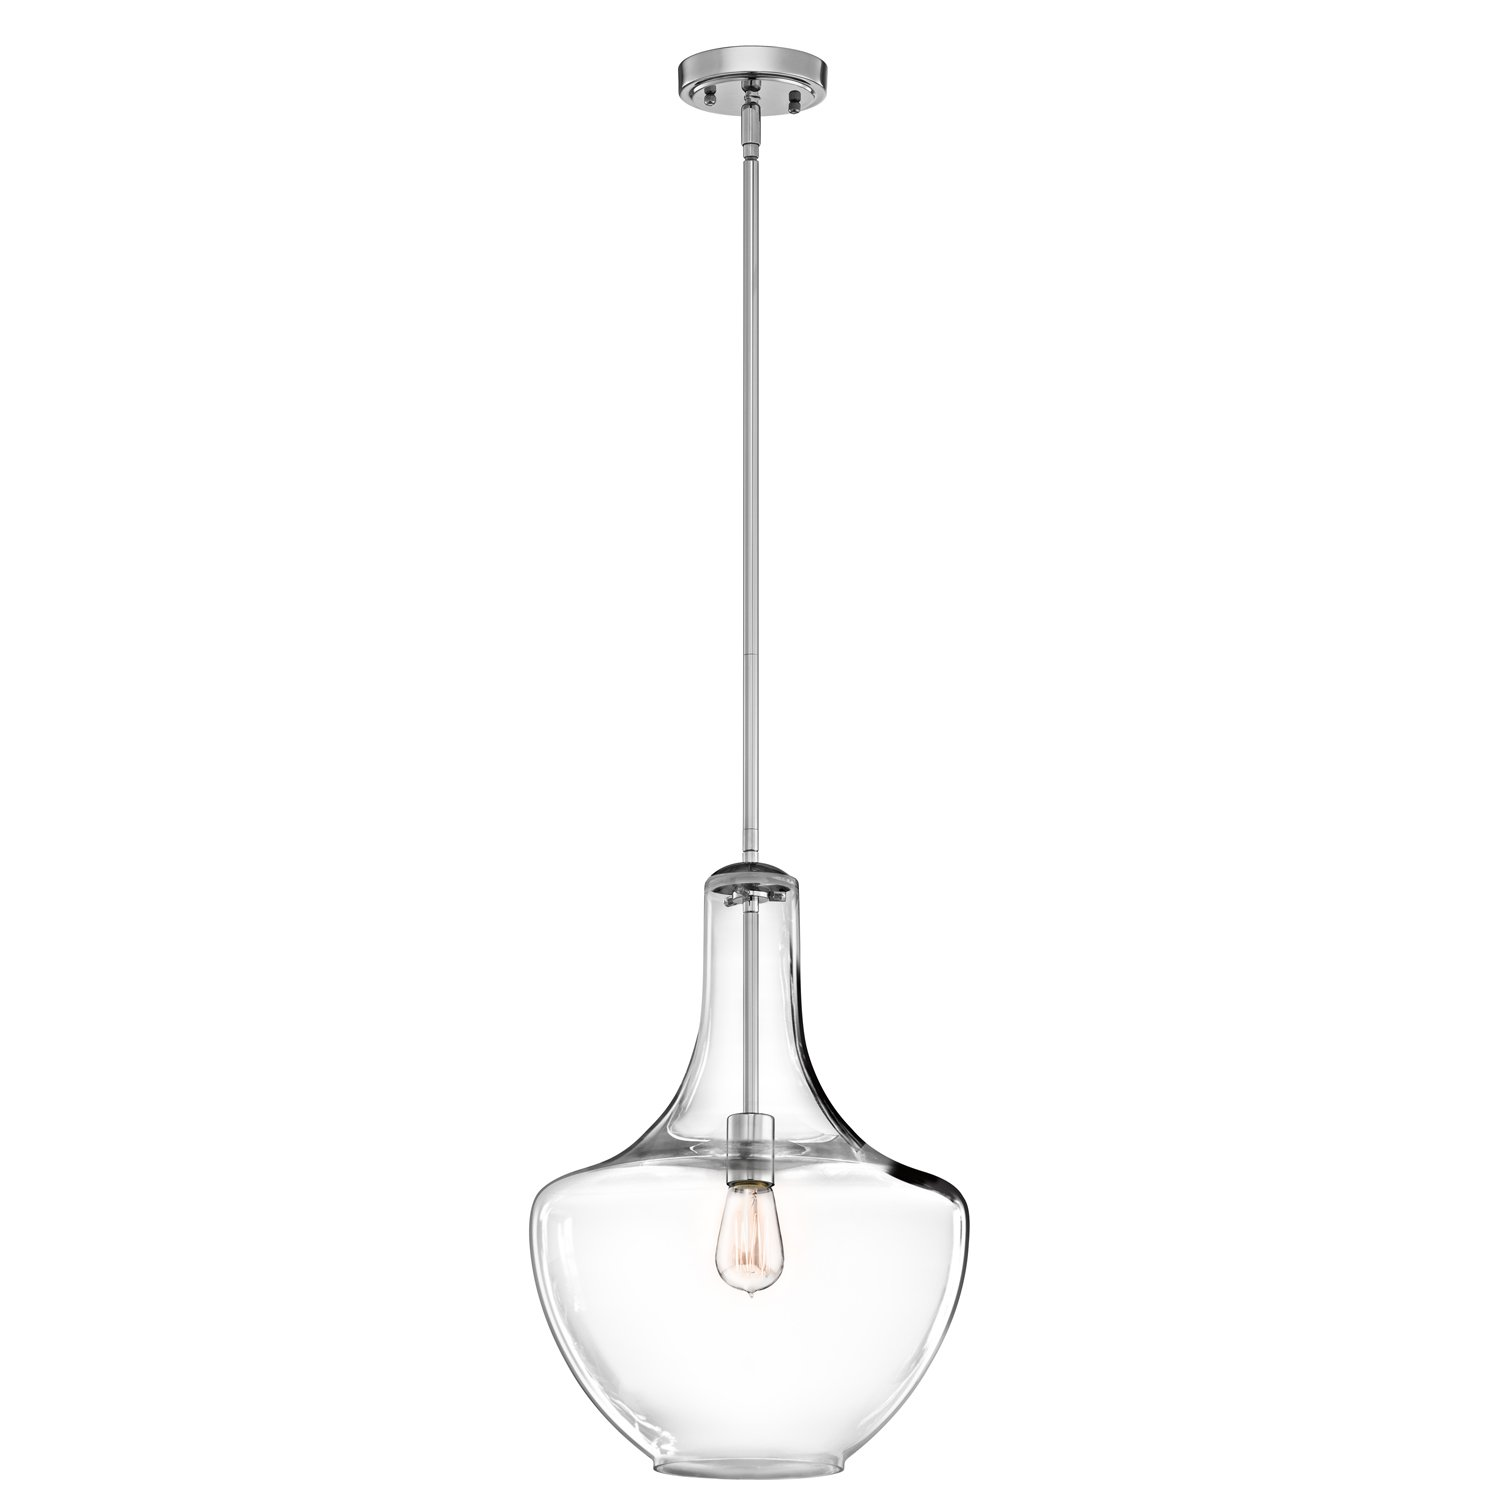 Kichler 42046OZ One Light Pendant   Ceiling Pendant Fixtures   Amazon.com